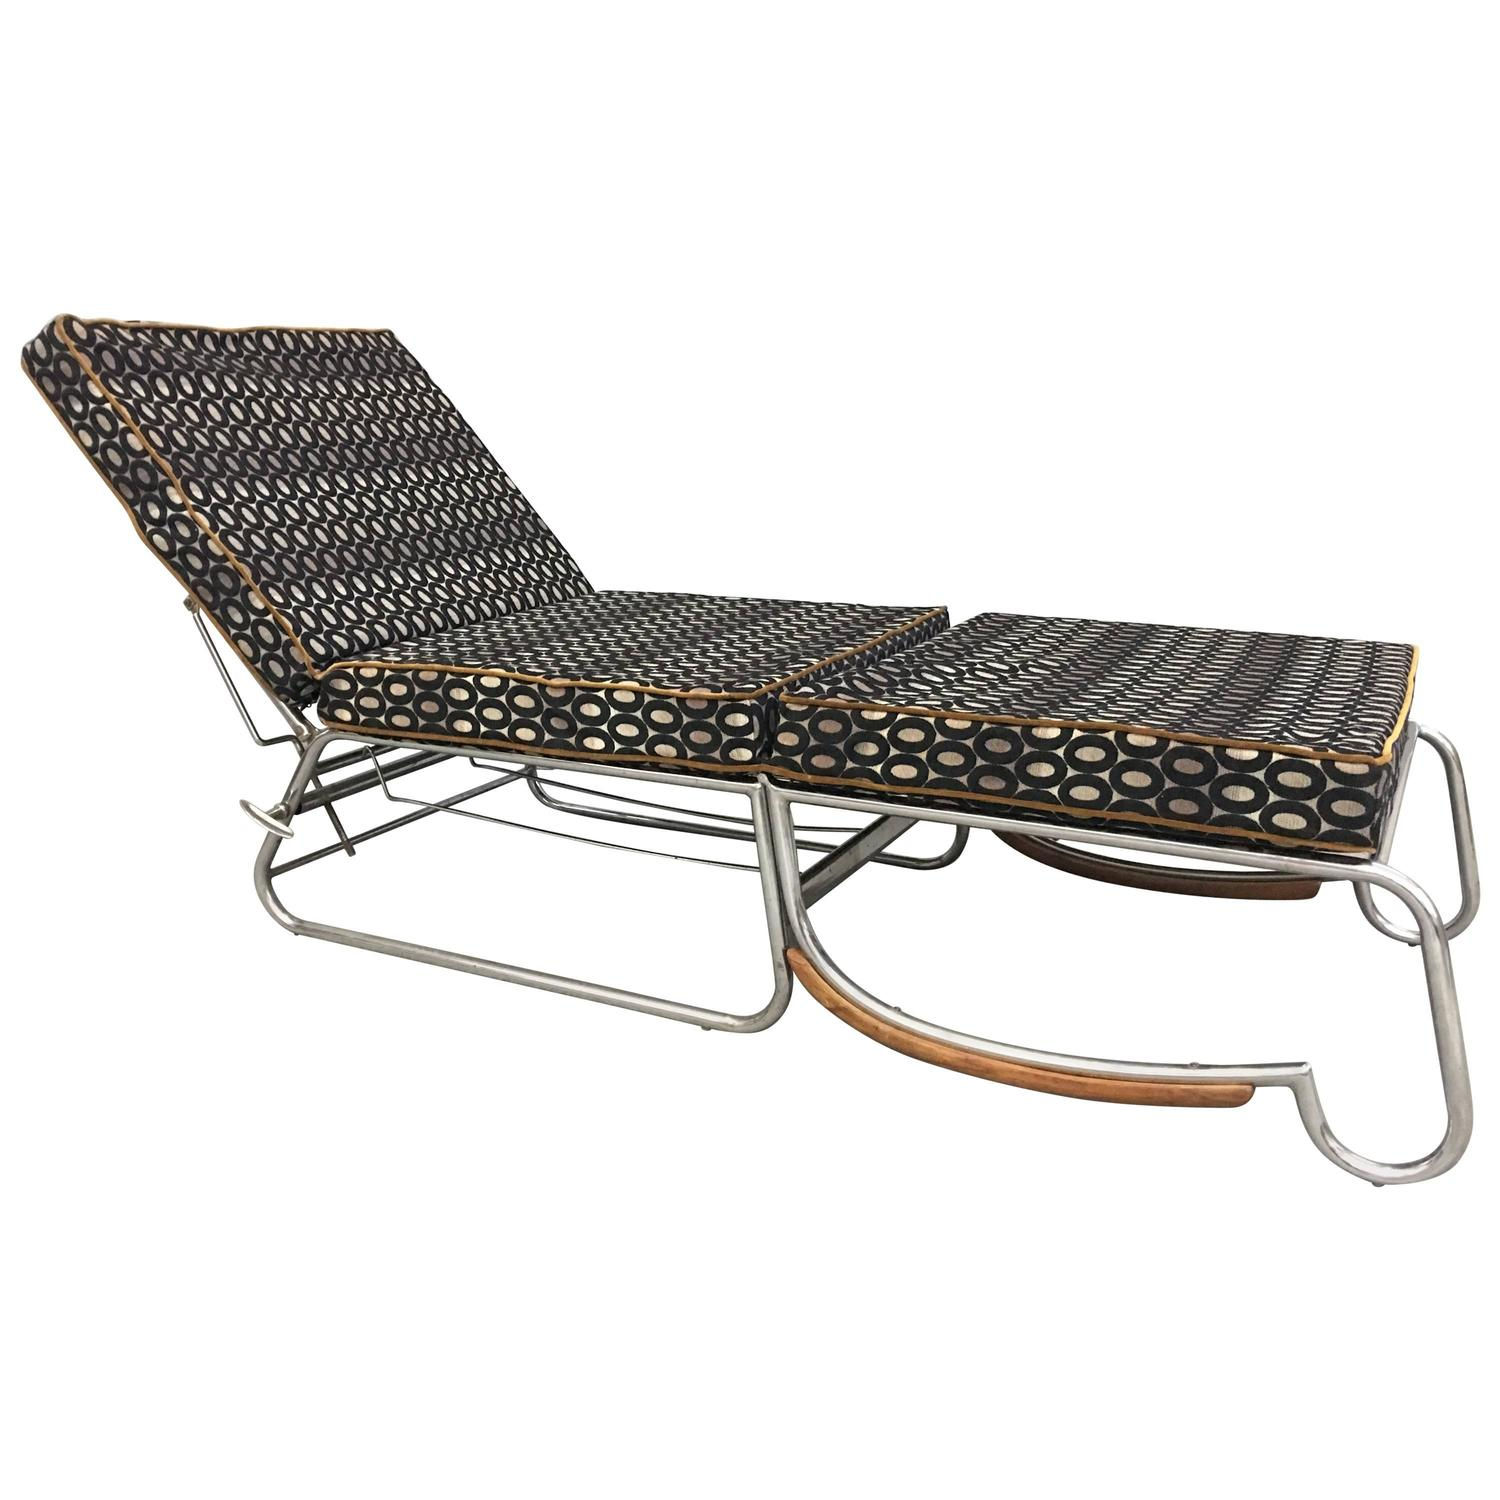 Art deco lounge chair in the style of marcel breuer for Art deco style chaise lounge